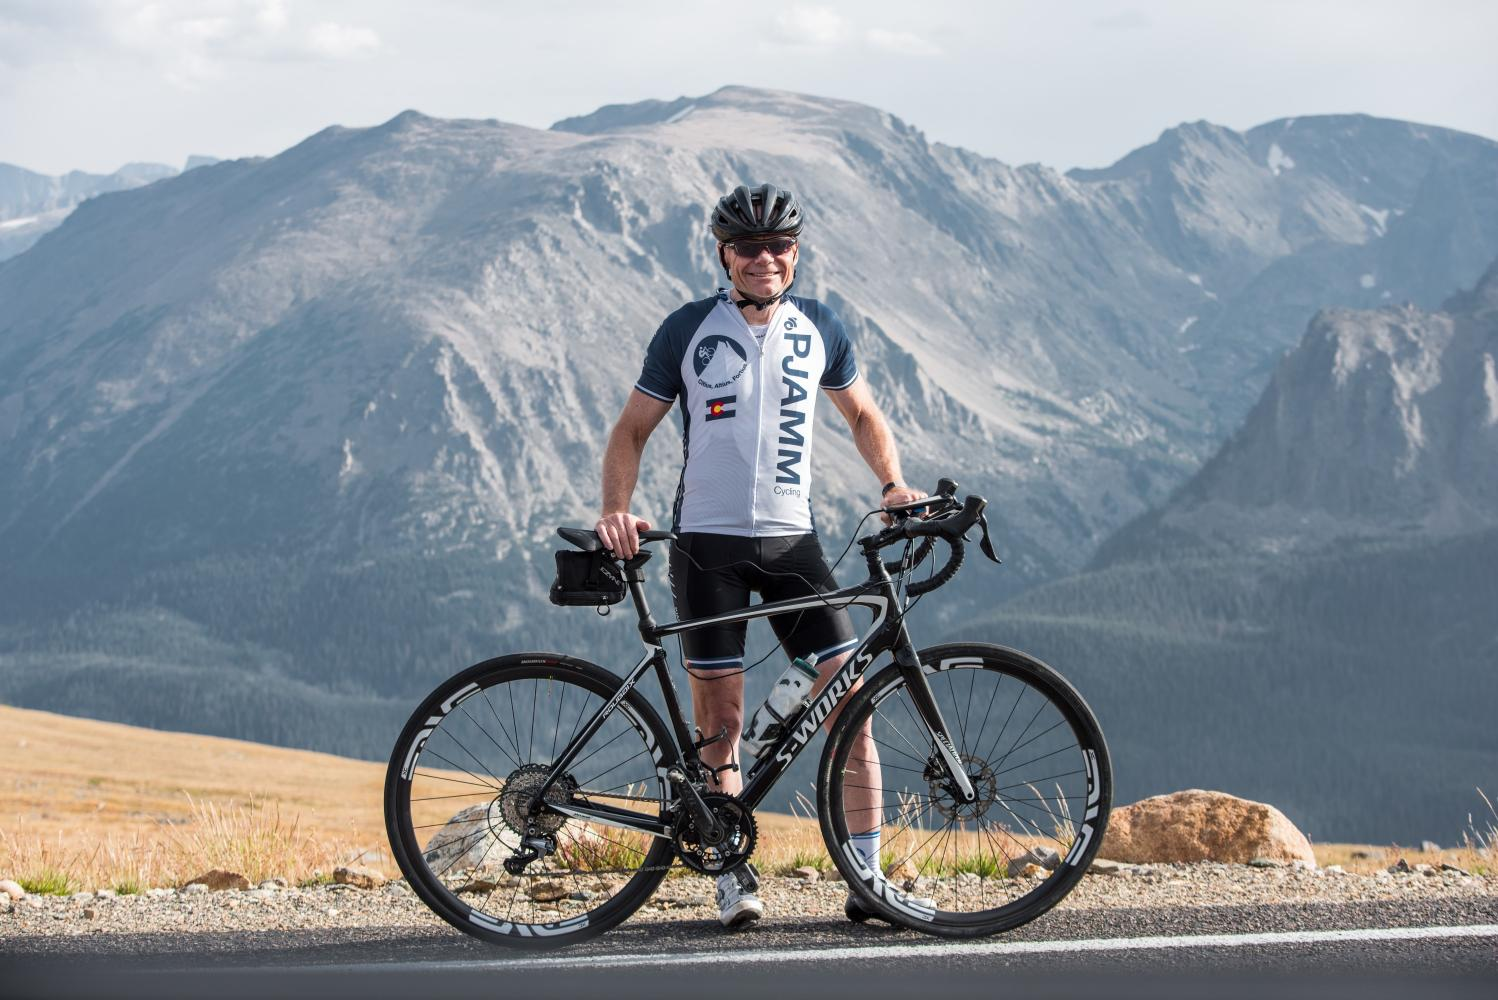 Trail Ridge Bike Climb - PJAMM Cycling